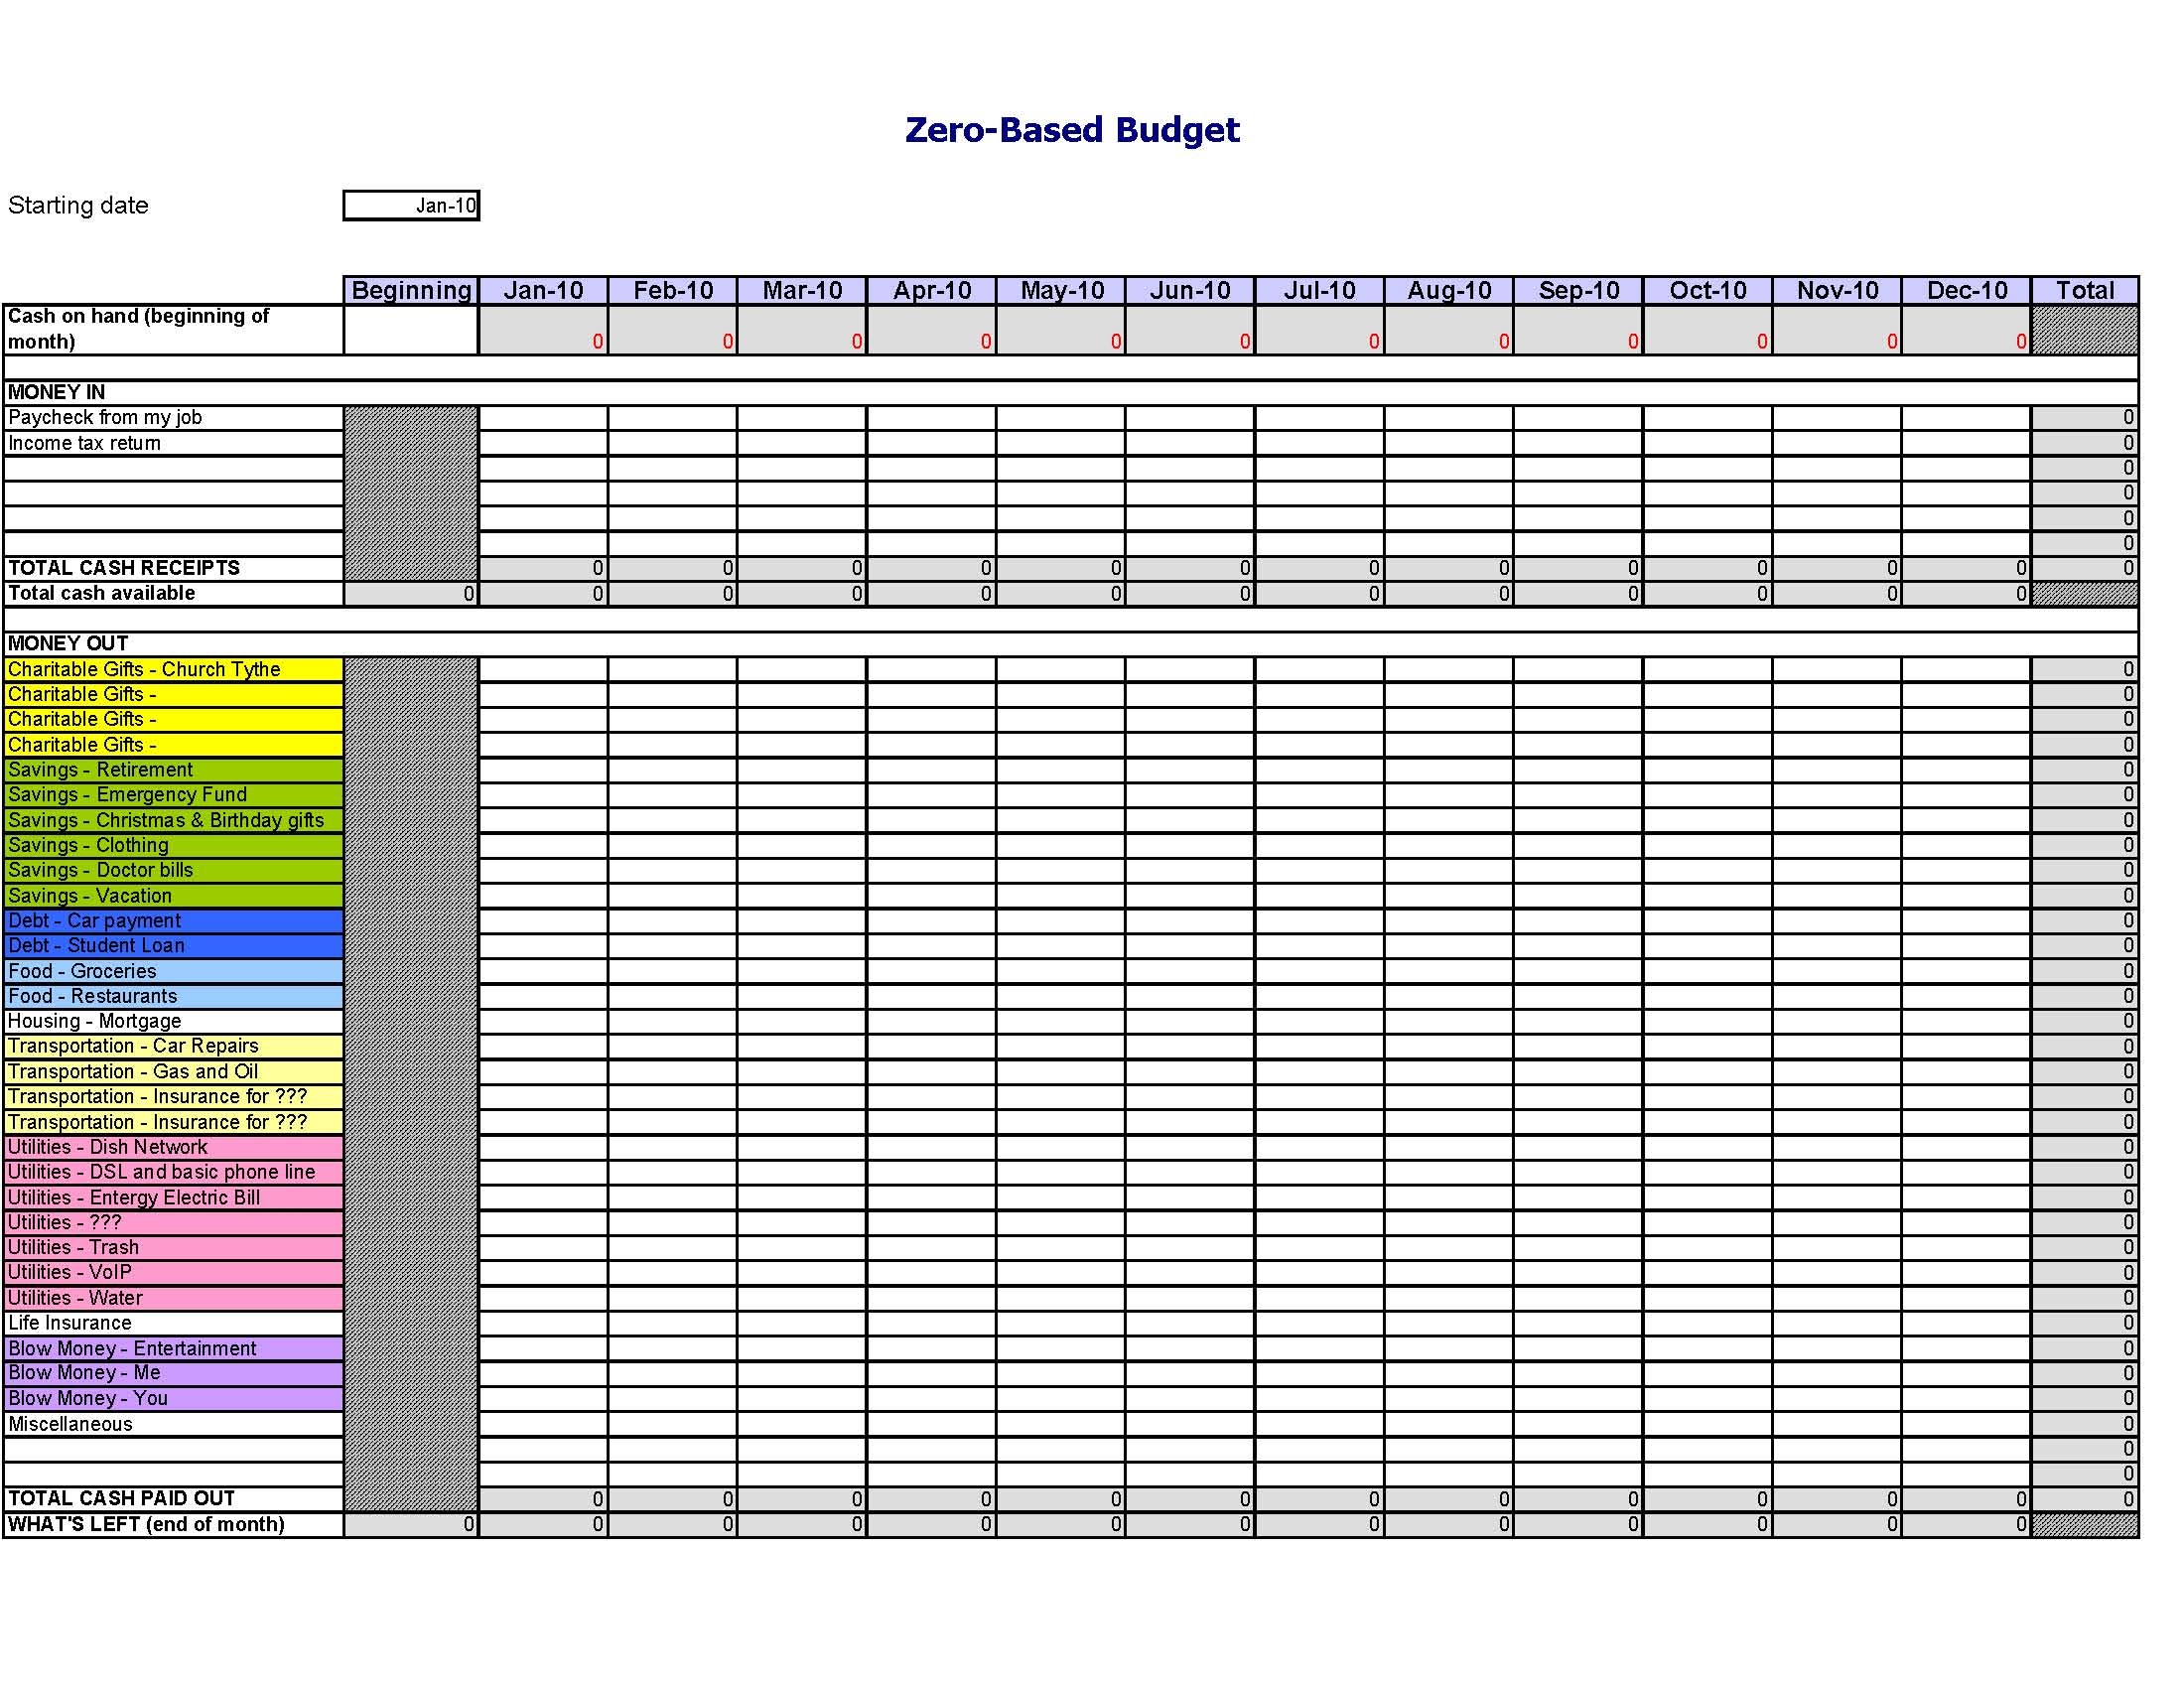 Excel Expense Tracker Template Expense Tracking Spreadsheet Template Spreadsheet Templates for Busines Spreadsheet Templates for Busines Small Business Expense Report Template